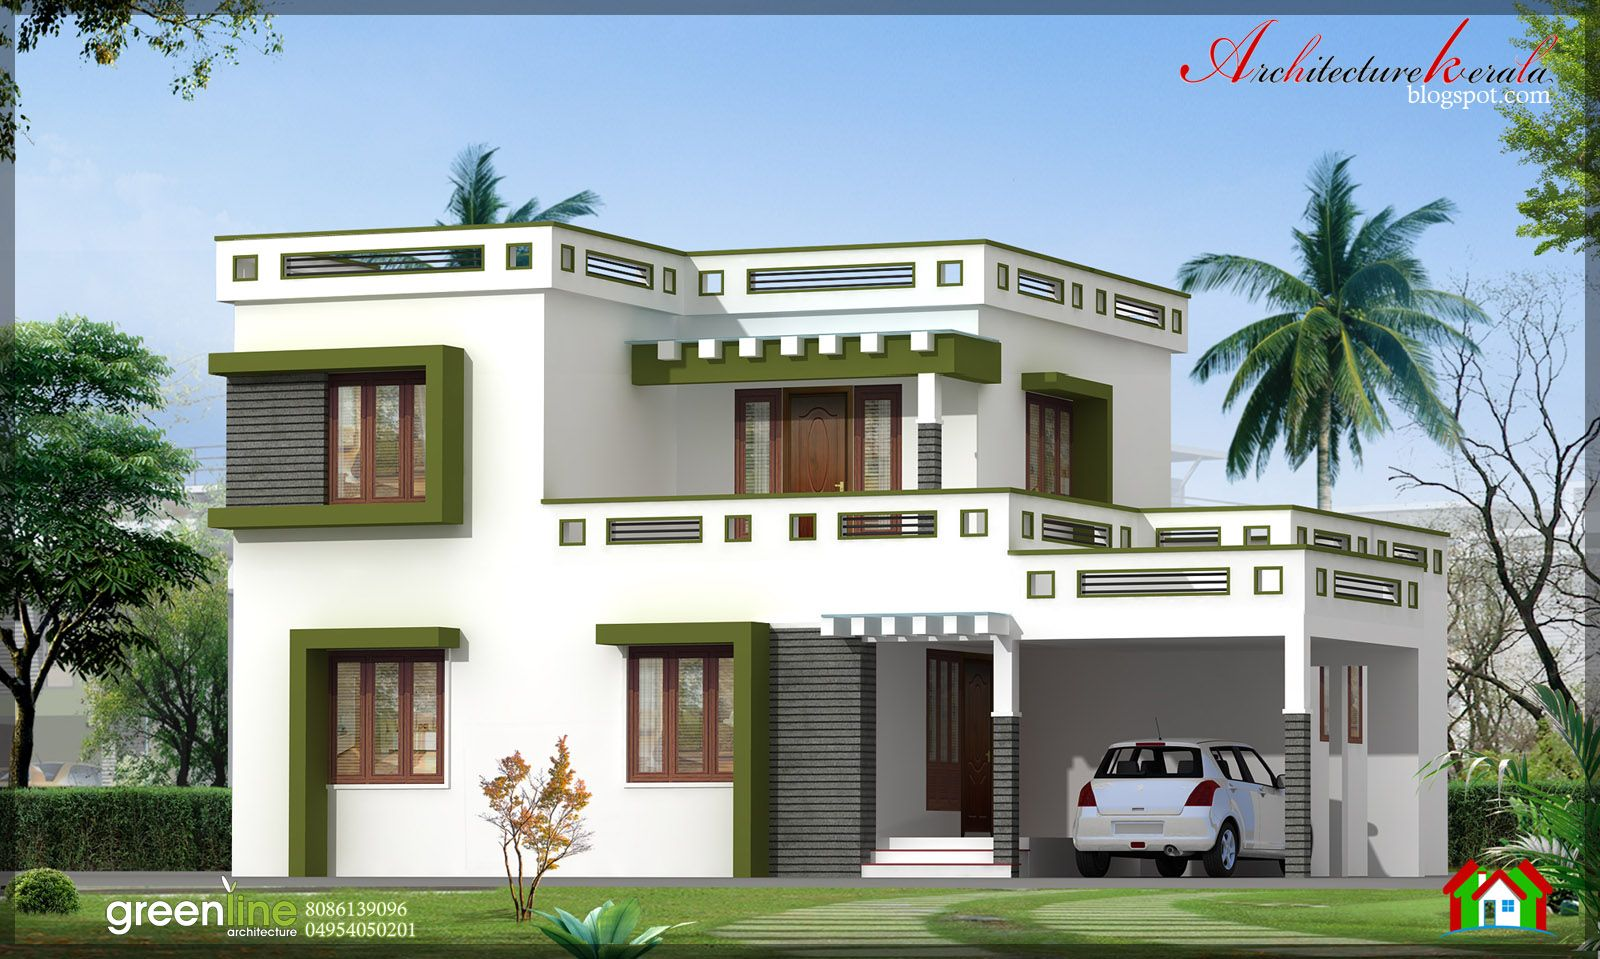 Kerala house plan photos and its elevations contemporary for Kerala home designs contemporary